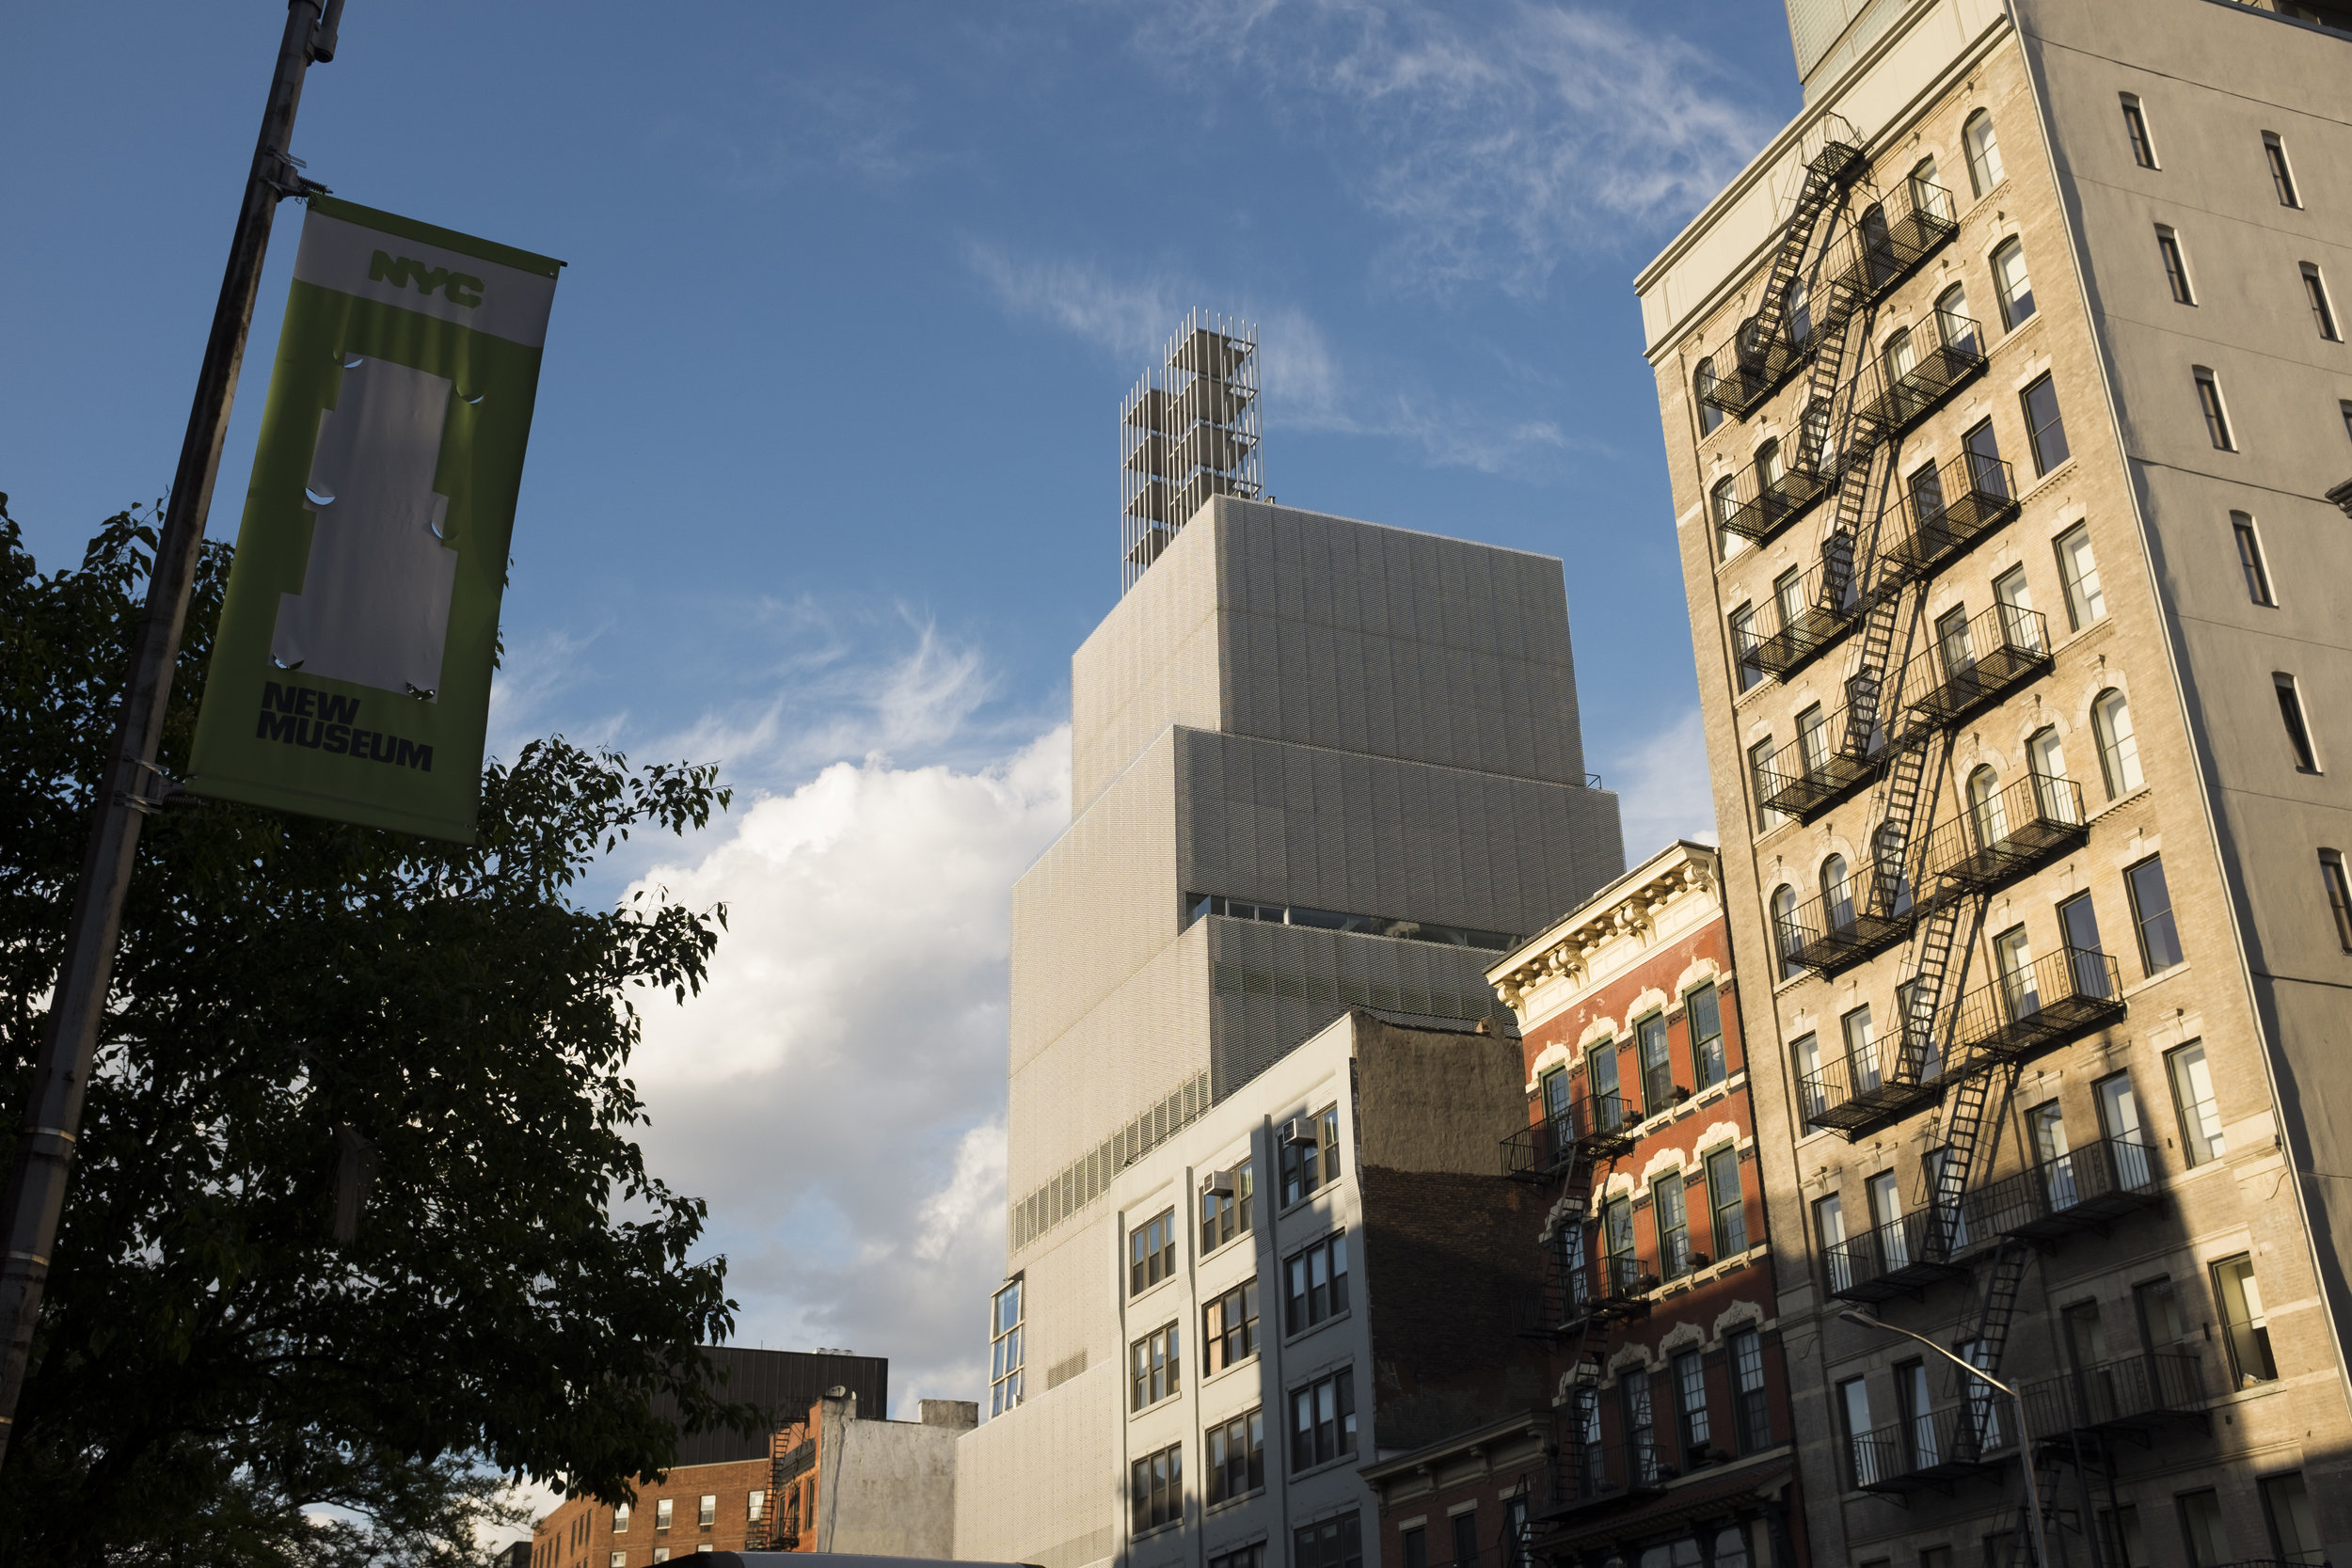 New Museum for Contemporary Art (and rooftop)